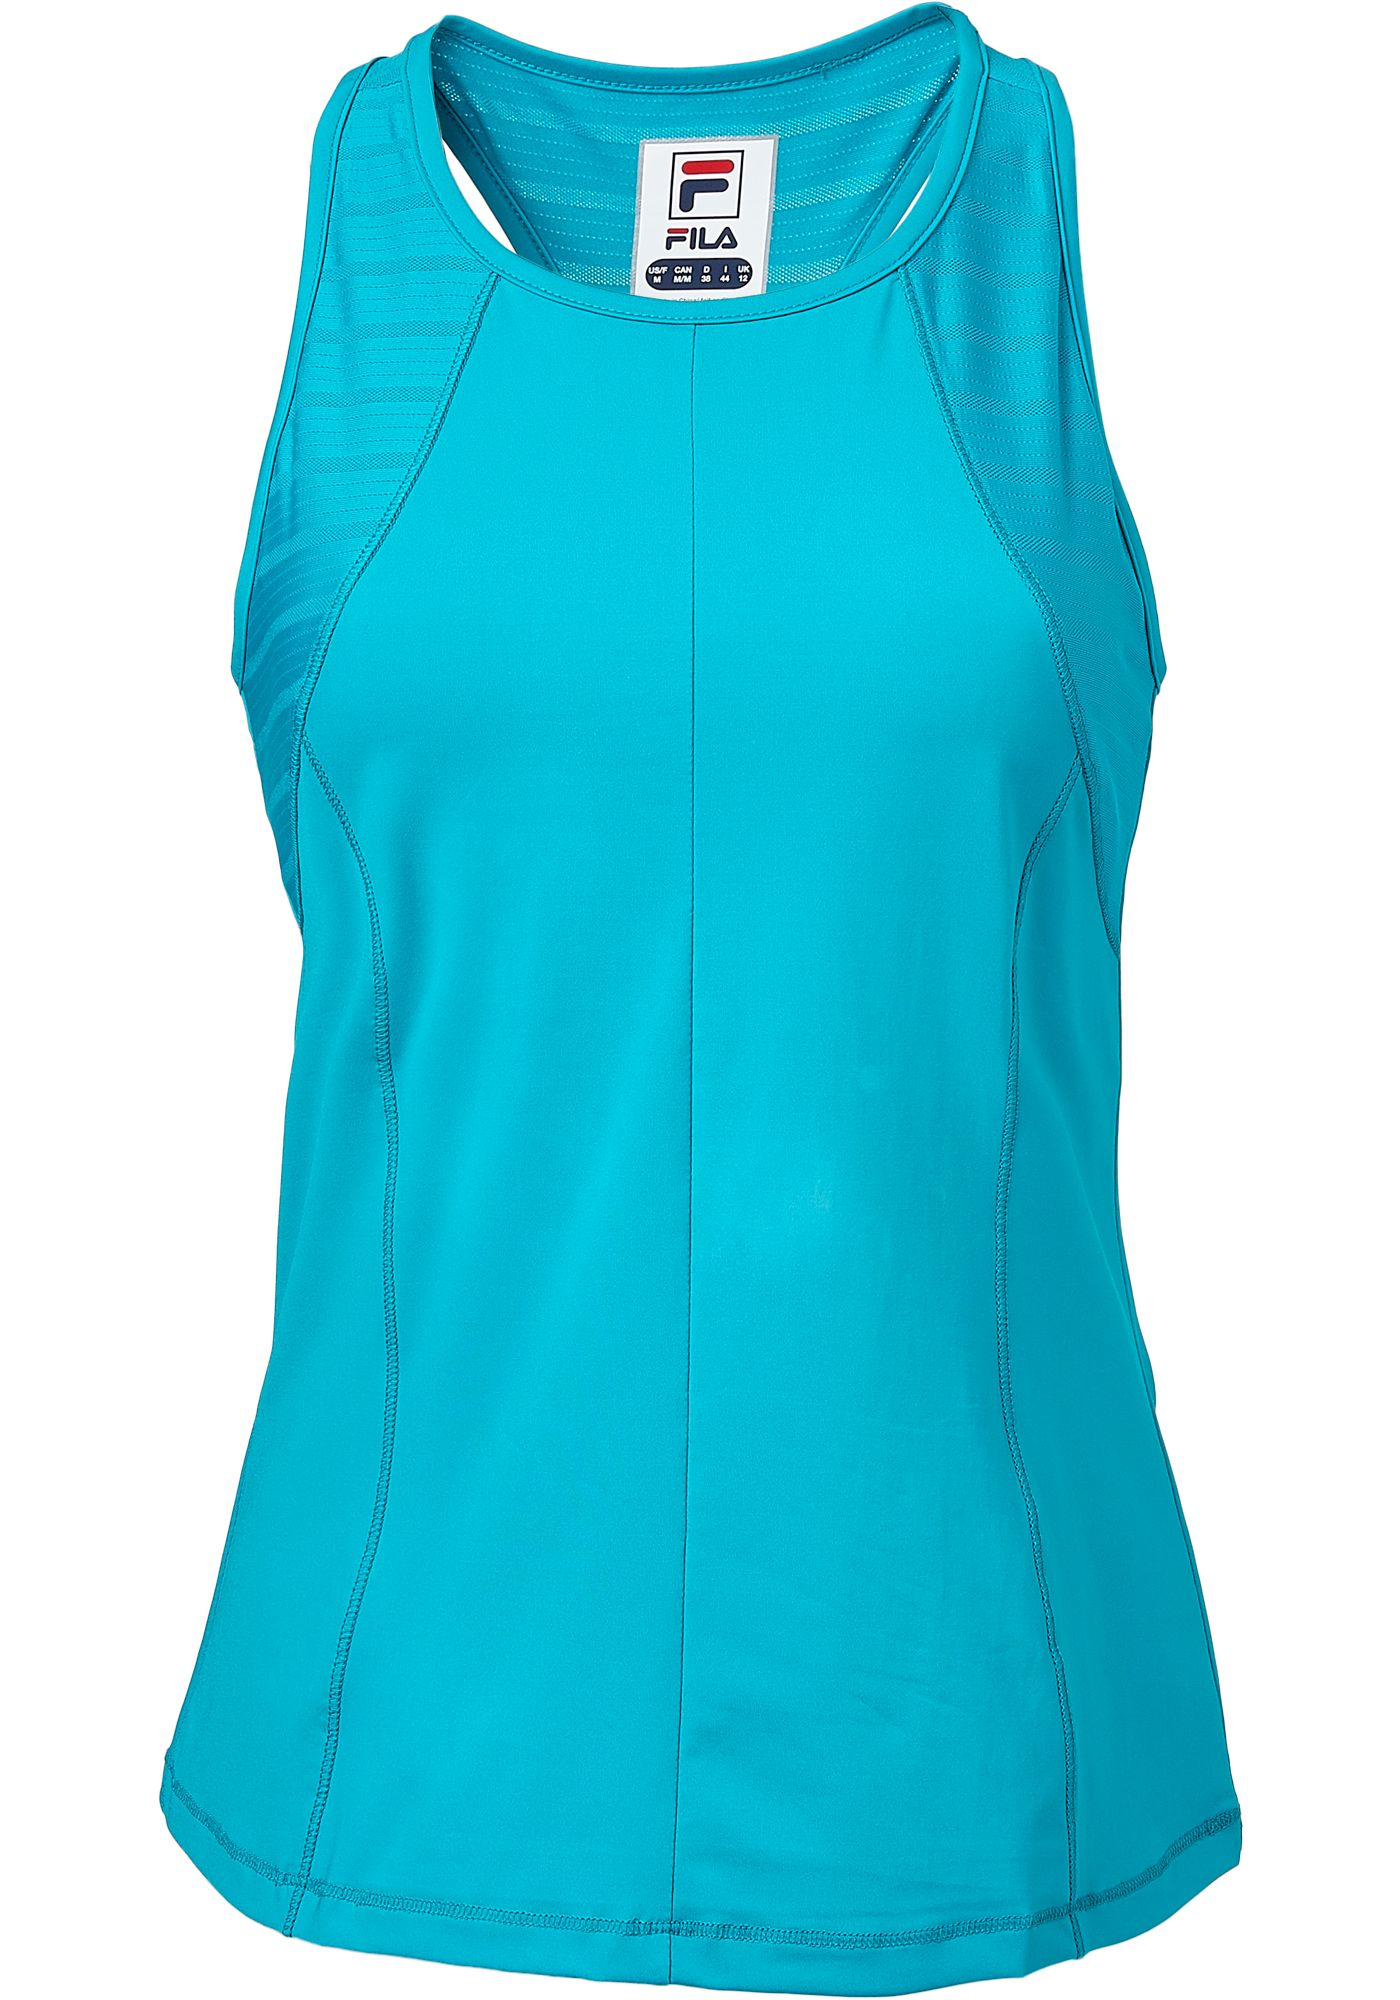 FILA Women's Court Allure Racerback Tennis Tank